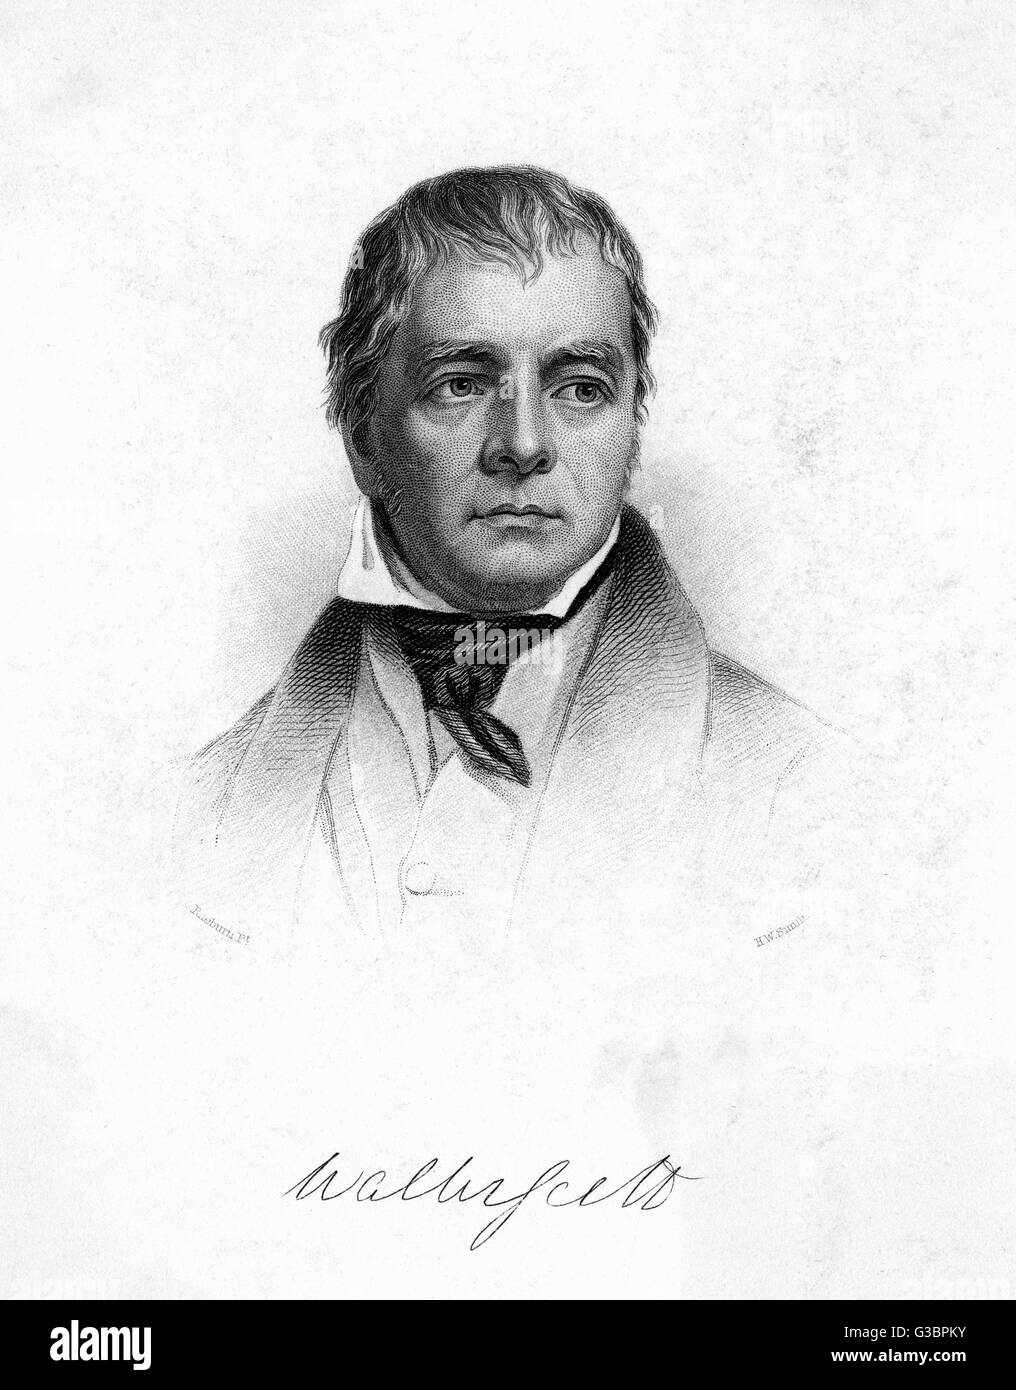 SIR WALTER SCOTT  with his autograph        Date: 1771 - 1832 - Stock Image